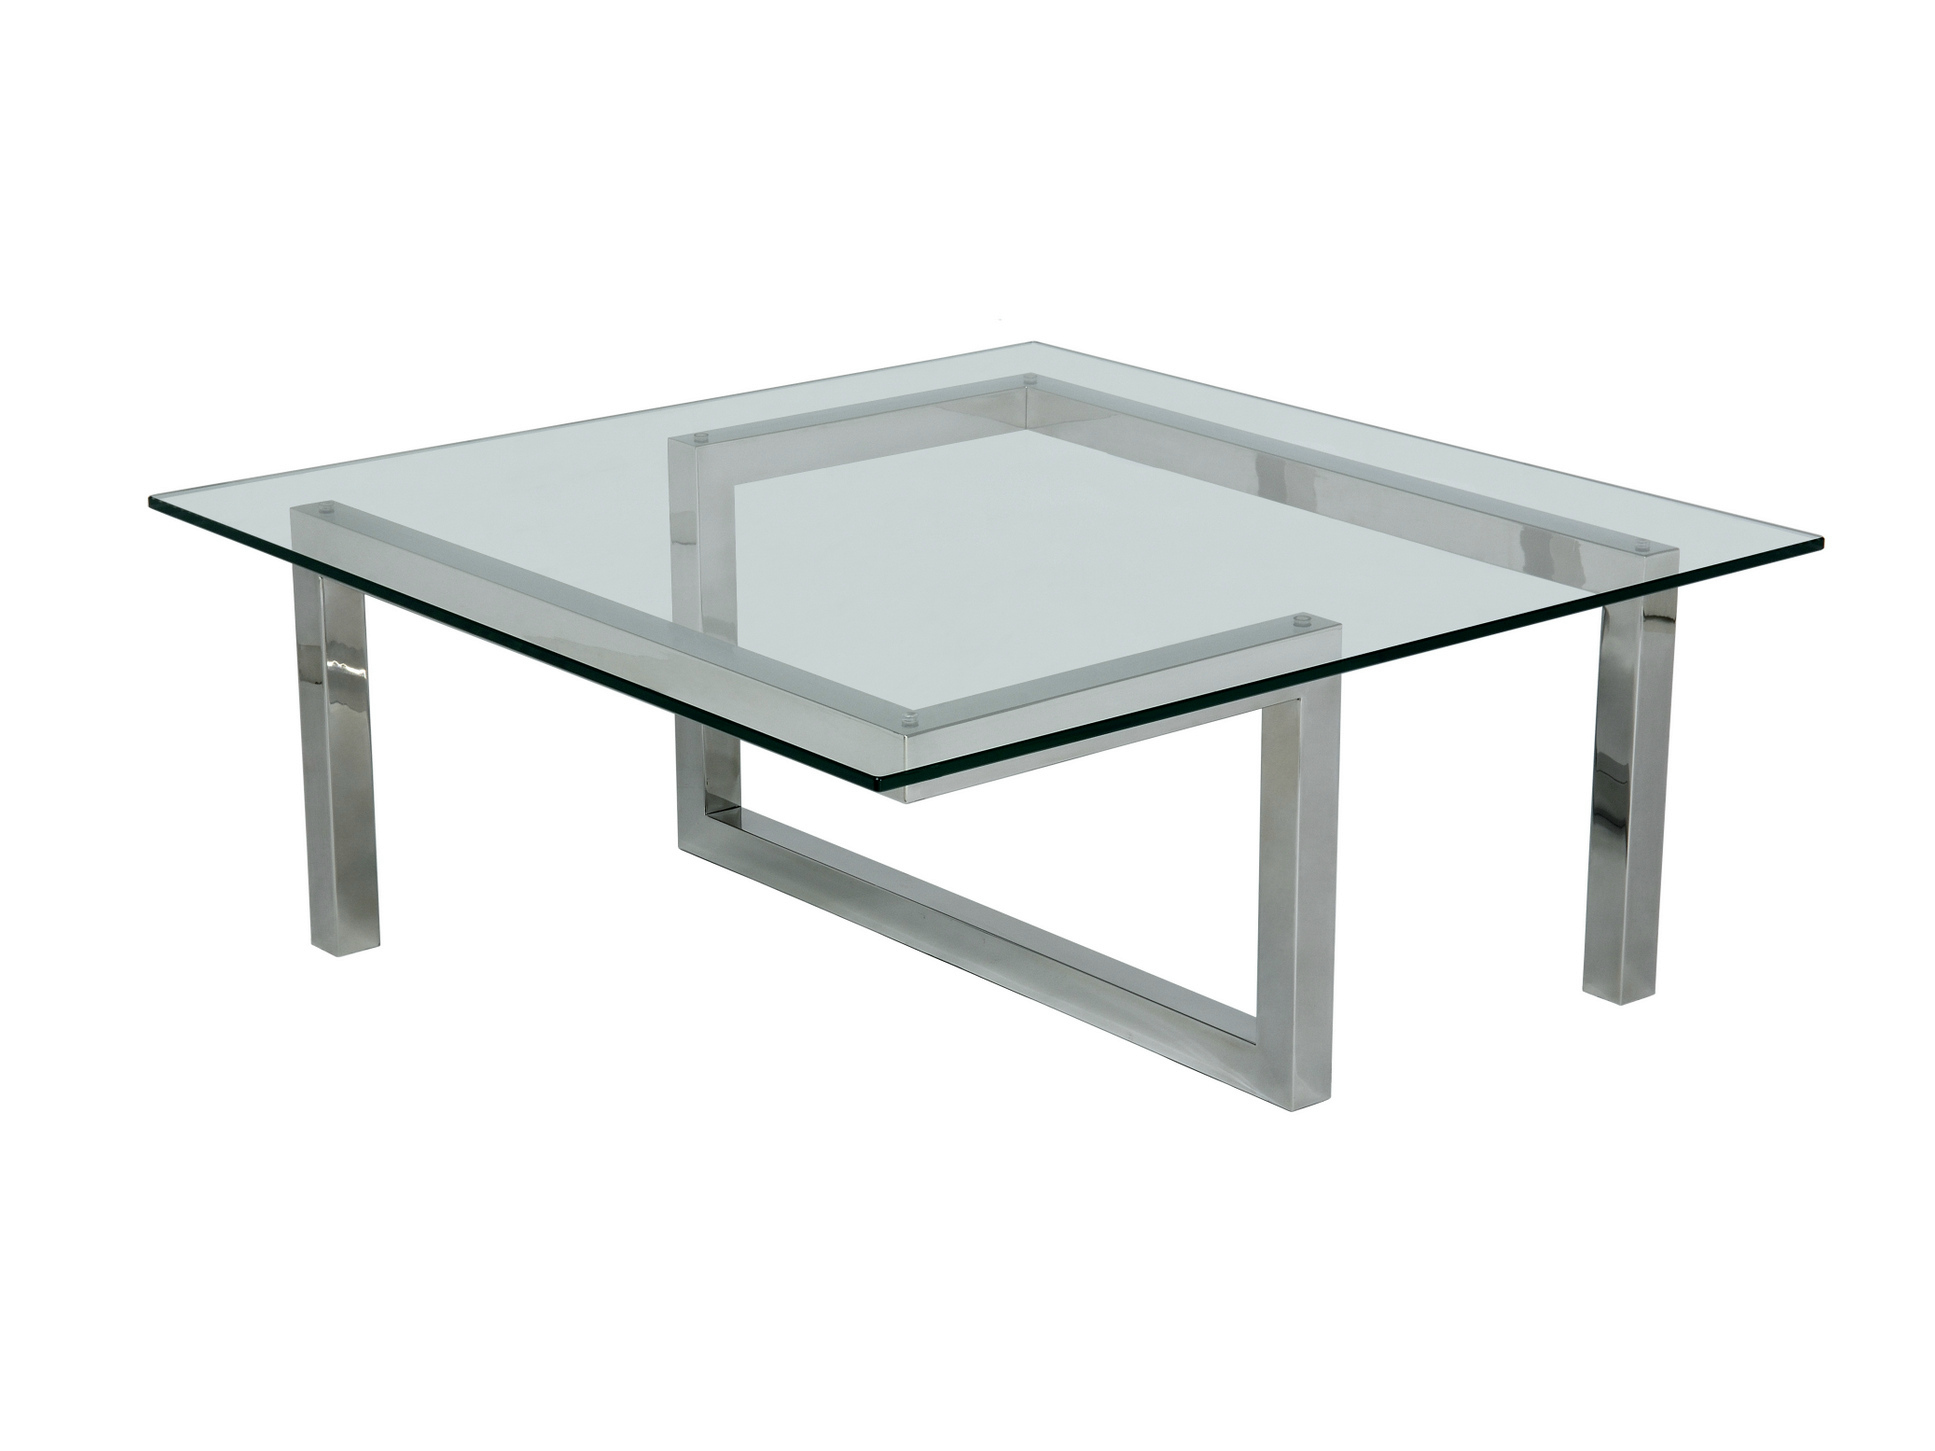 Picture of: Low Glass Square Coffee Table